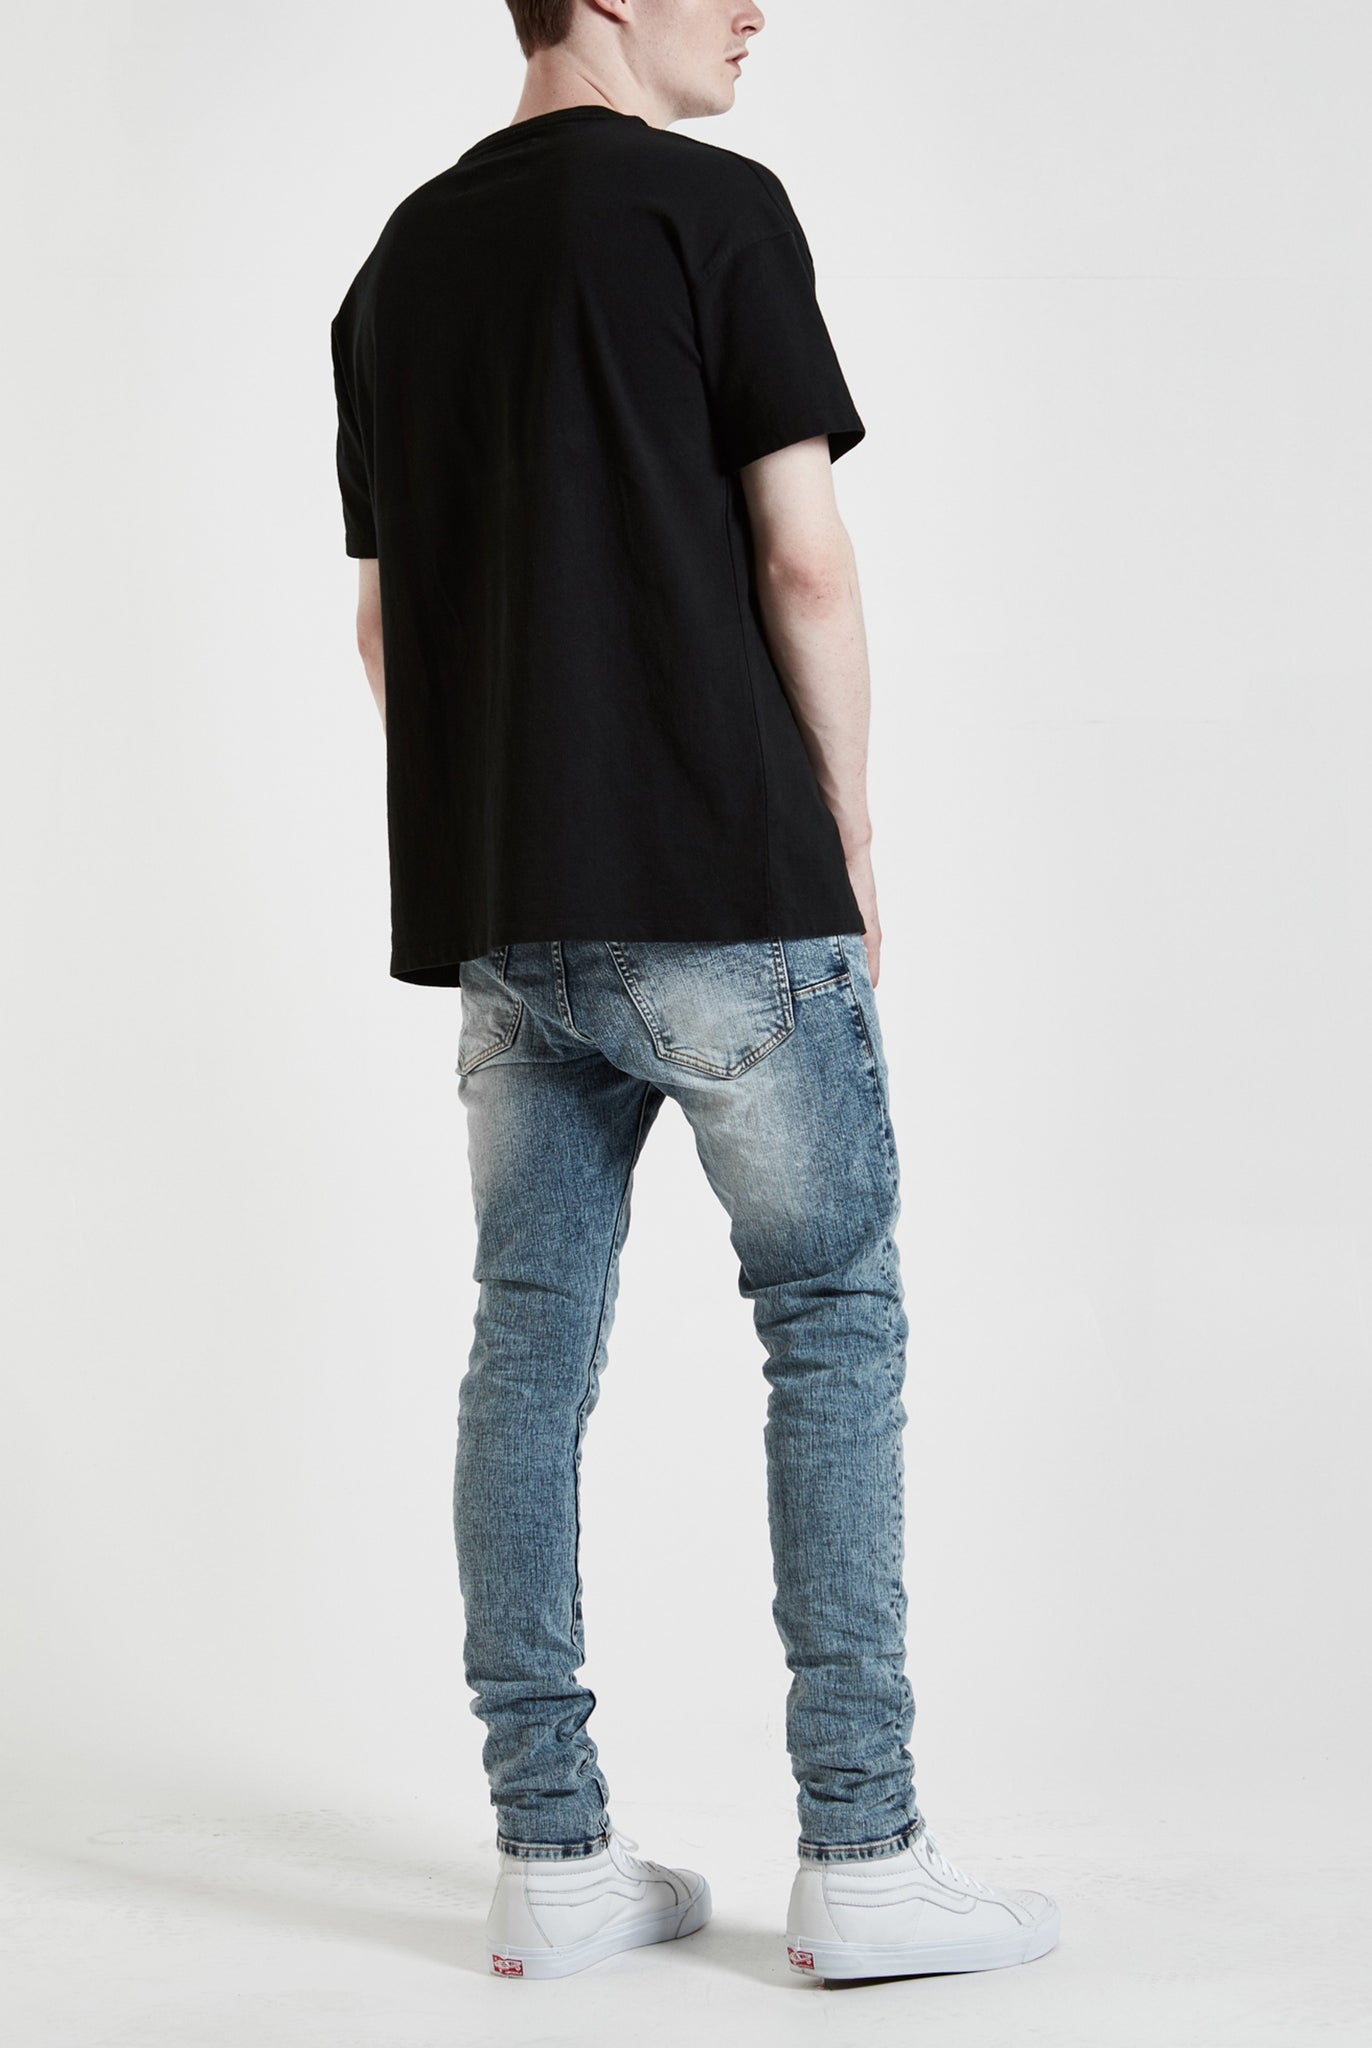 P001 LOW RISE WITH SLIM LEG - Stoned Acid Wash